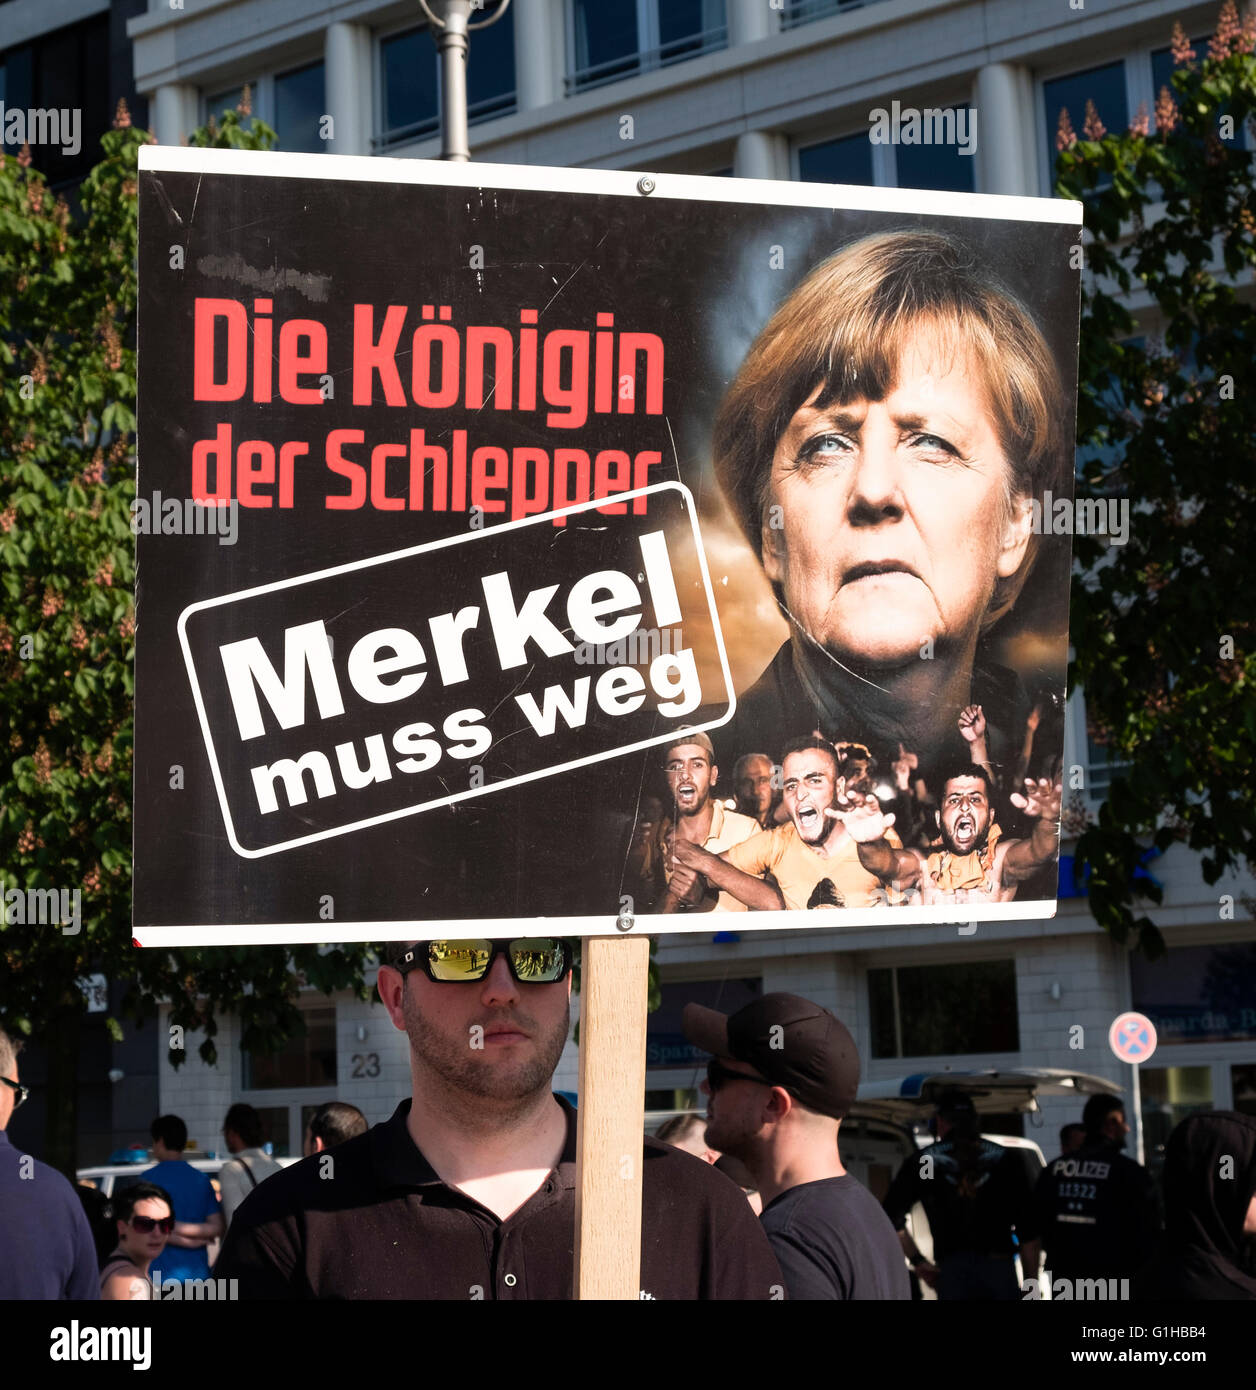 Far-right demonstrators protest against Islam, refugees and Angela Merkel in Berlin. Sign sign, 'The Queen of - Stock Image